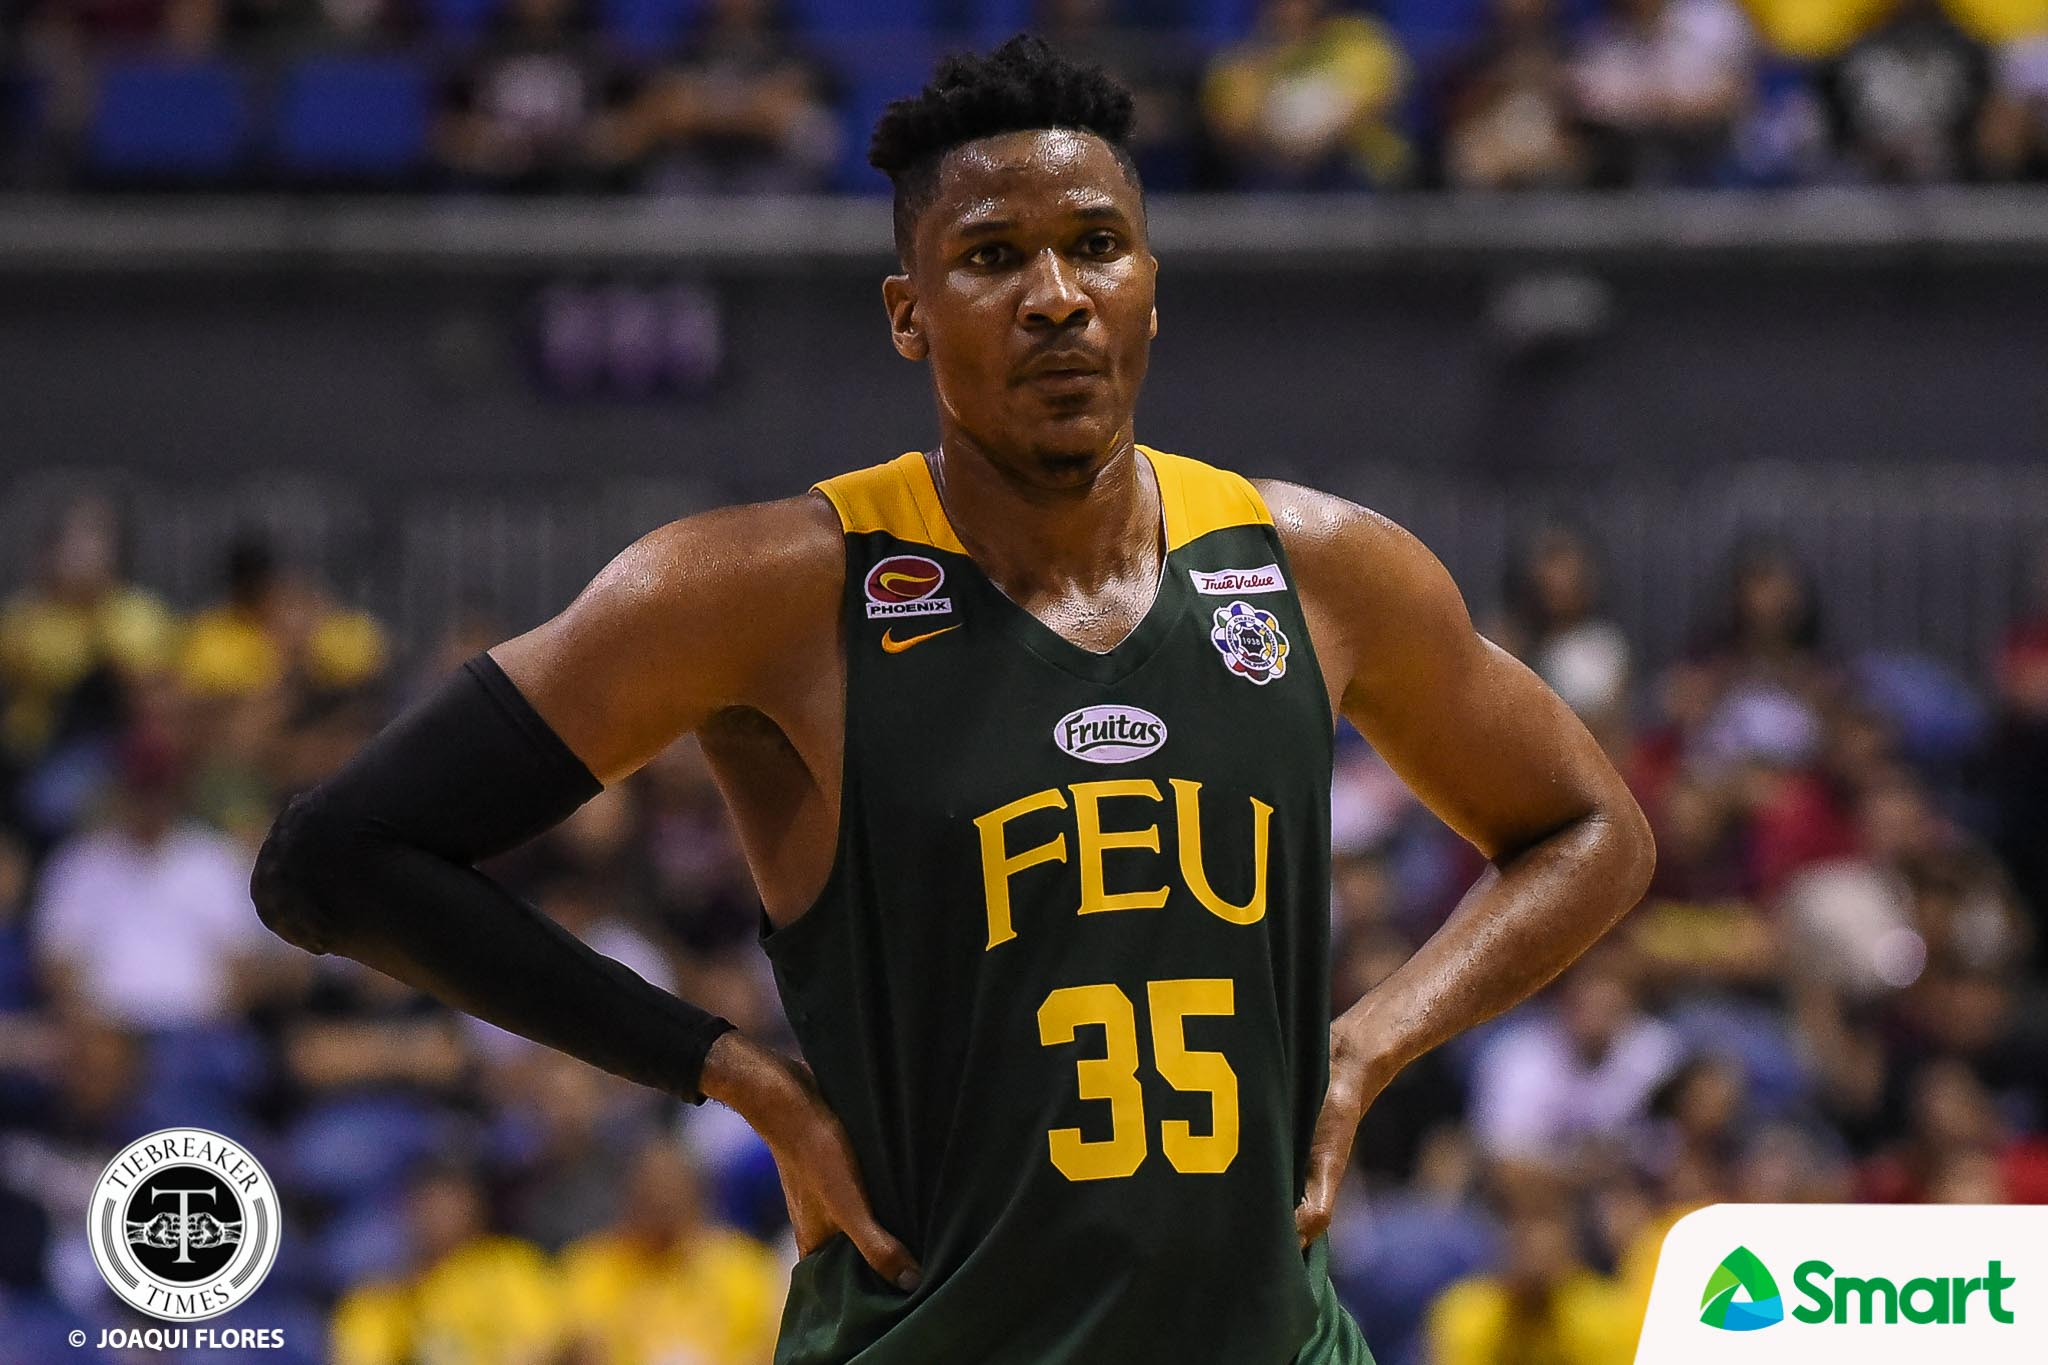 Tiebreaker Times Emman Ojuola sees sit out year as 'blessing in disguise' Basketball FEU News UAAP  UAAP Season 82 Men's Basketball UAAP Season 82 FEU Men's Basketball emman ojuola